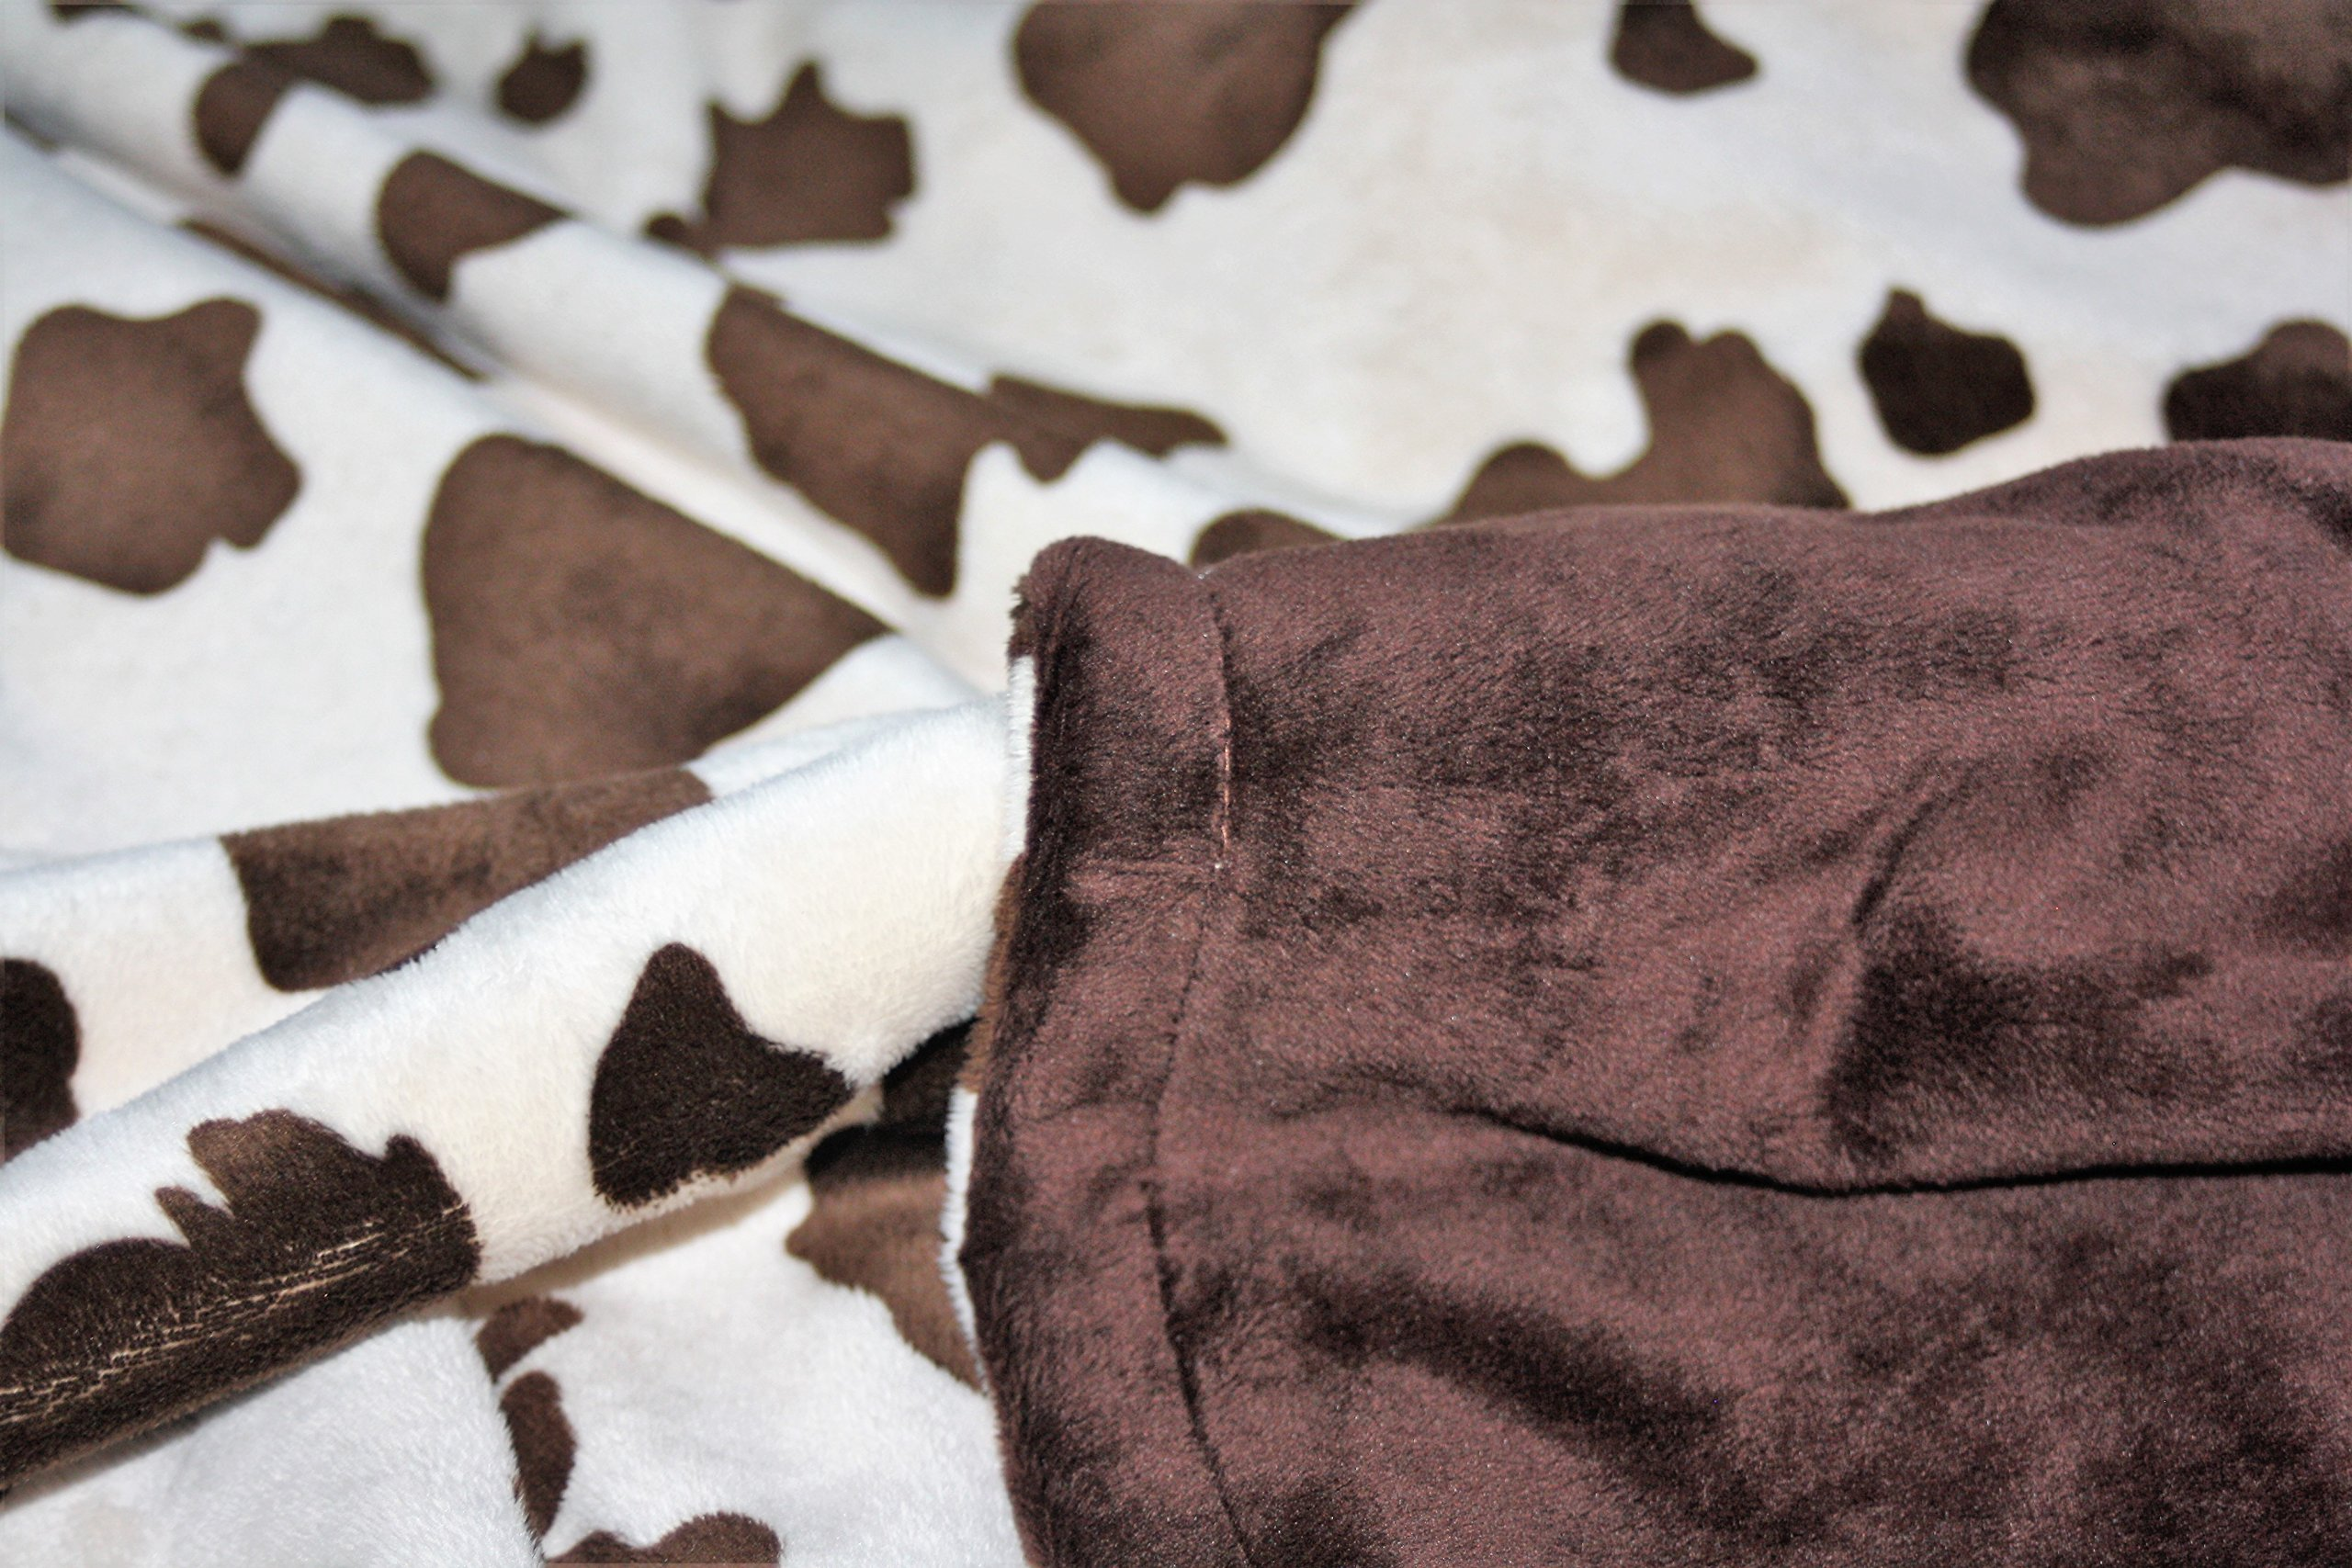 Minky Blanket - Baby Blanket, Toddler Blanket, Child Blanket - Cream and Brown Cow Blanket (Medium (@29''X30''), Brown) by Lil' Cub Hub